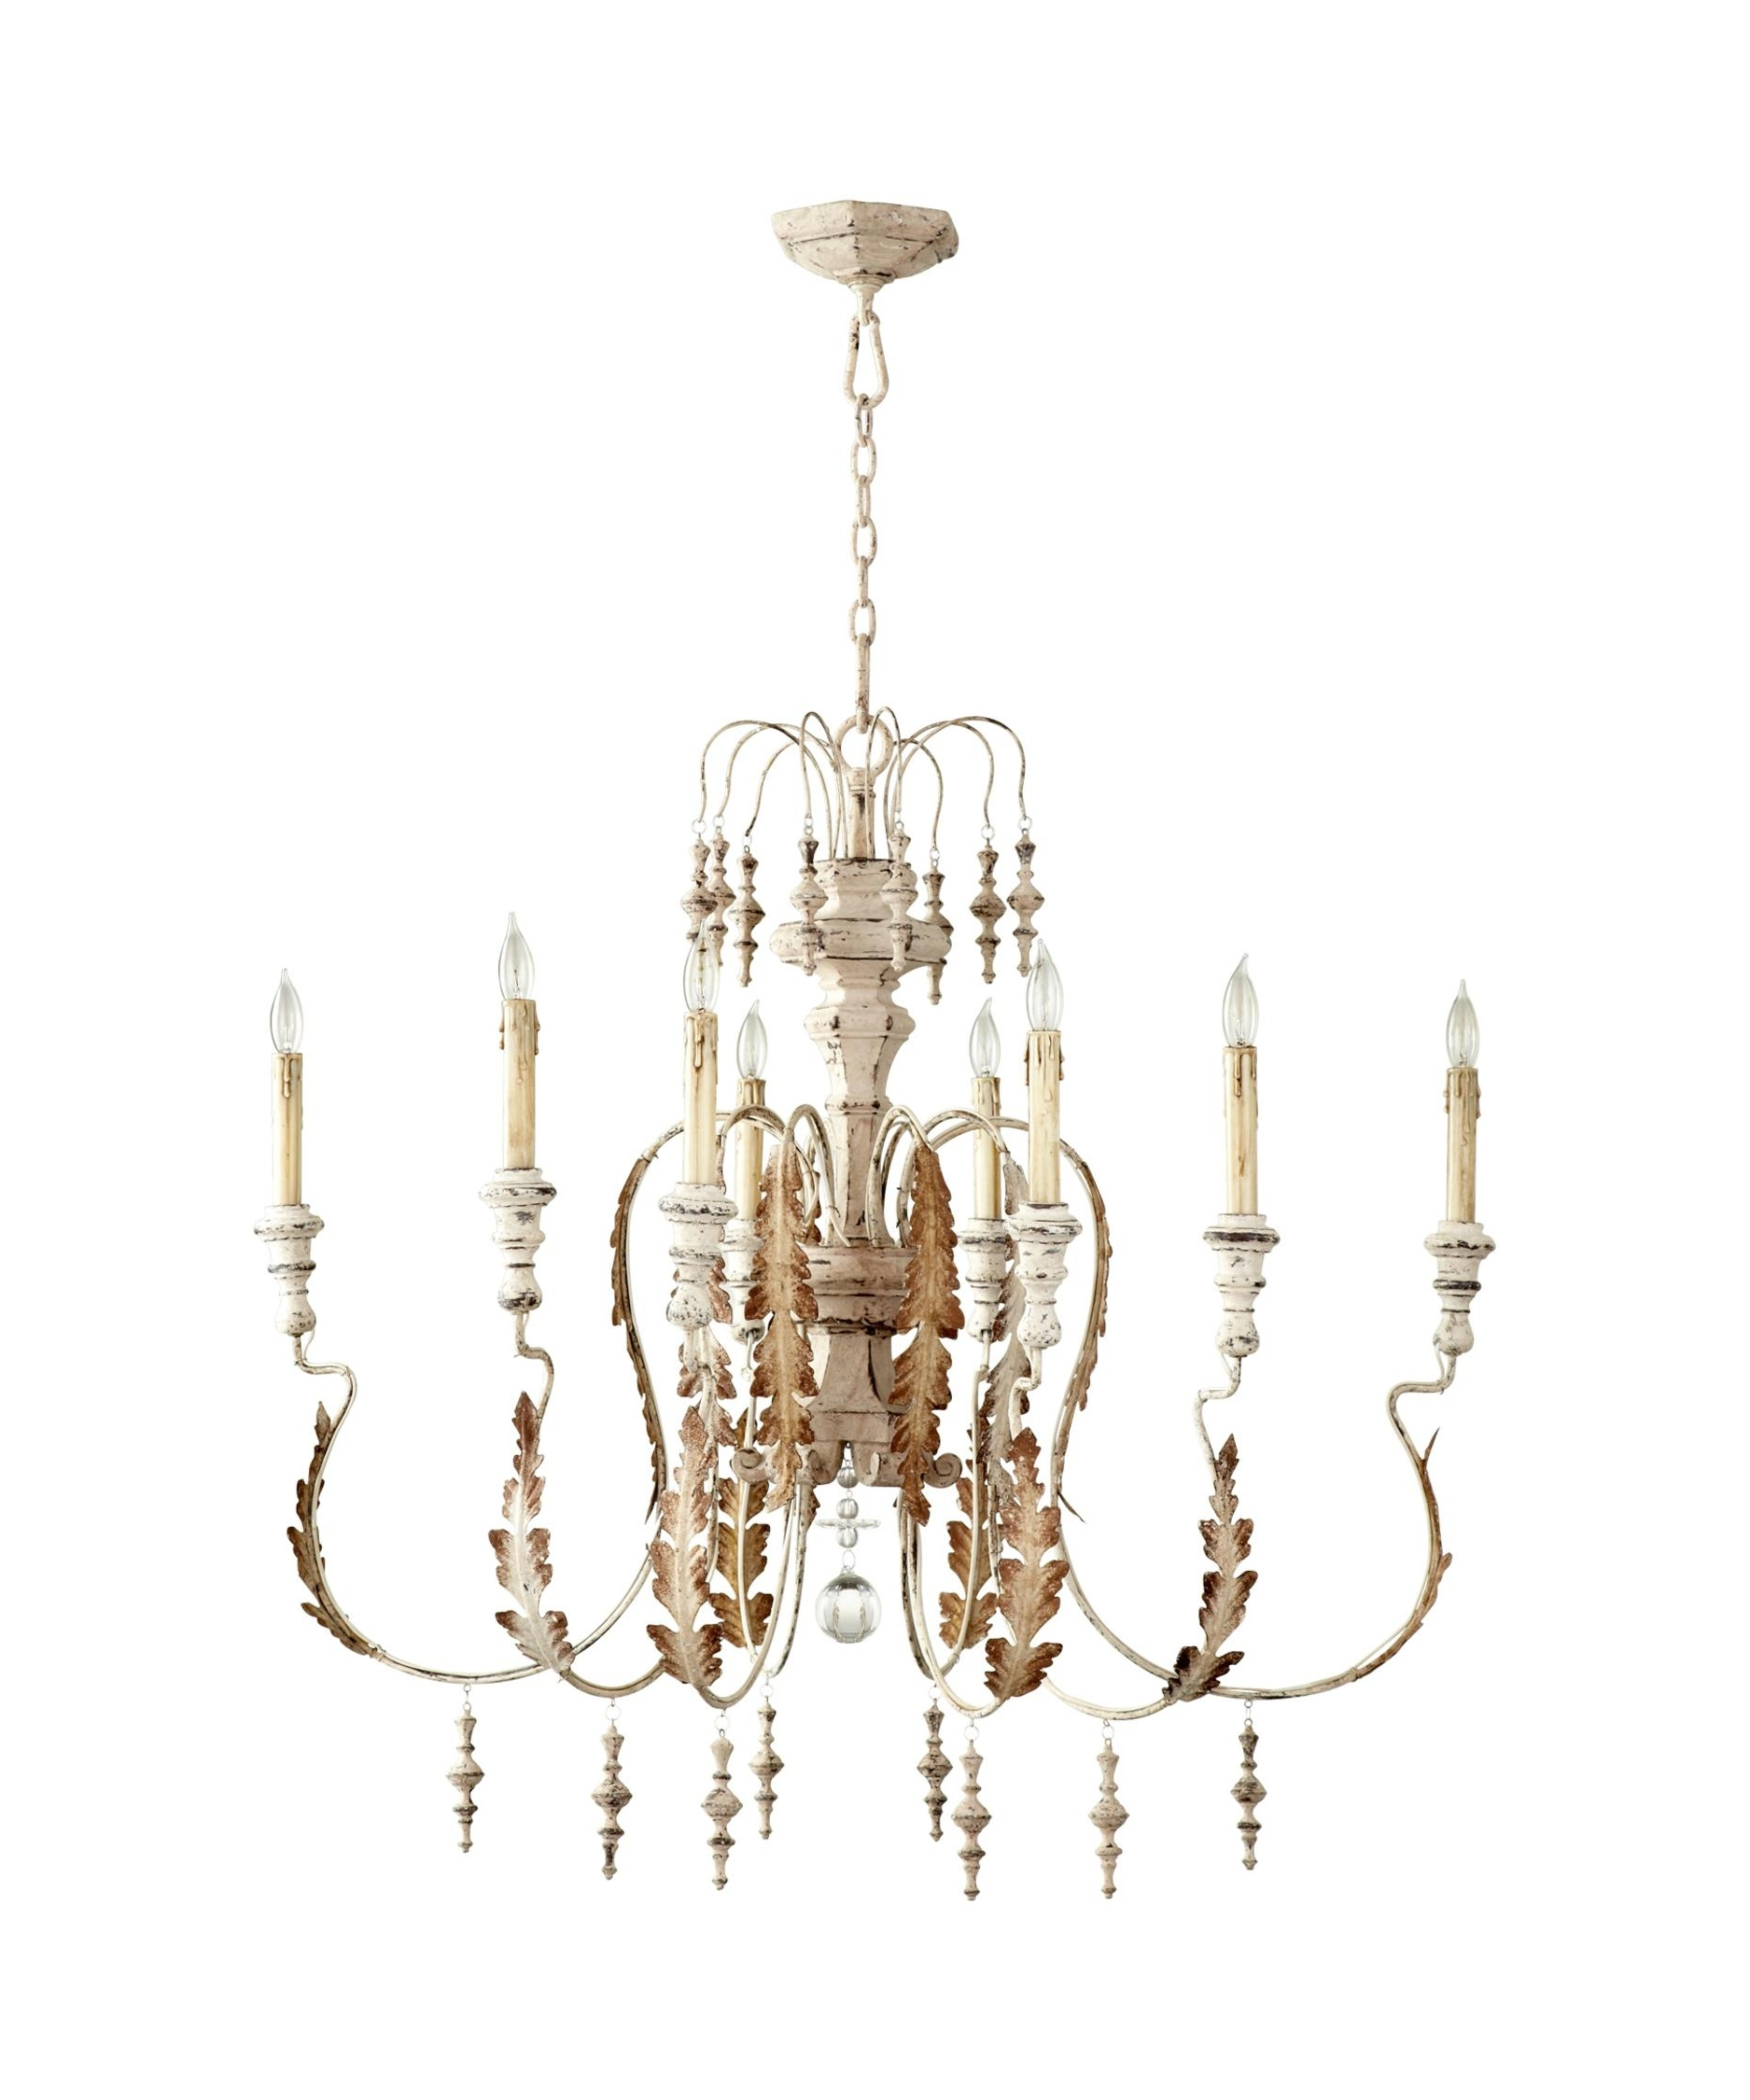 Chandelier Accessories In Most Recent Barry Wooley Designs (View 3 of 20)